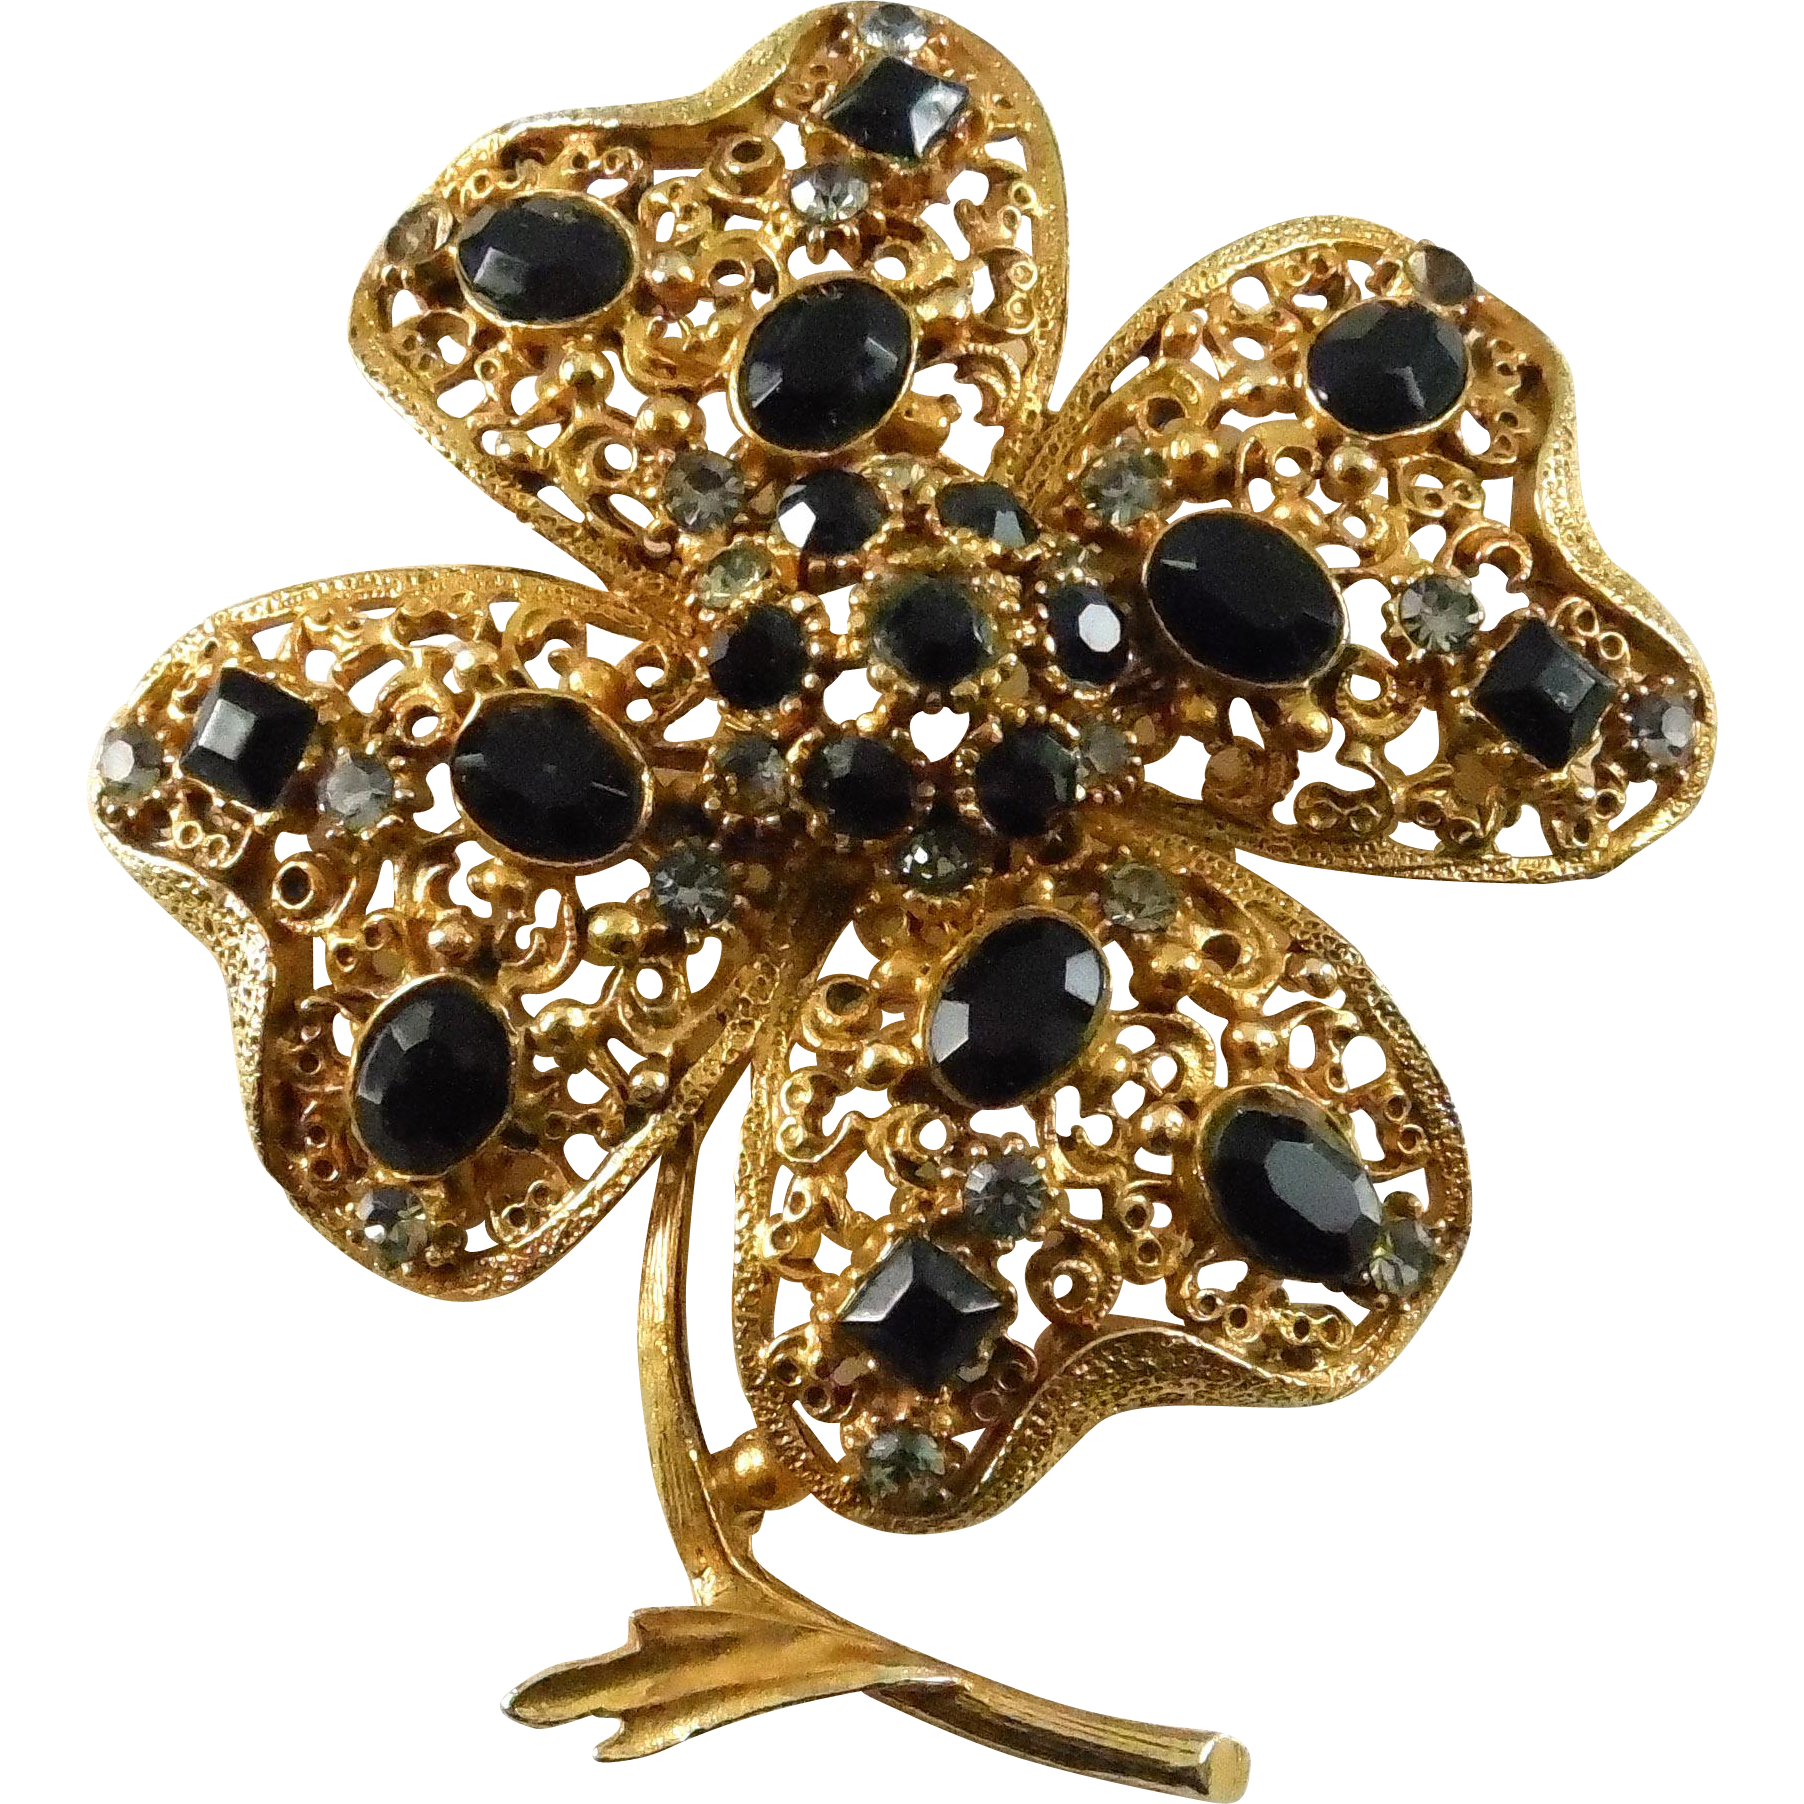 Vintage Florenza Large Flower or Shamrock Brooch with Clear & Black Stones